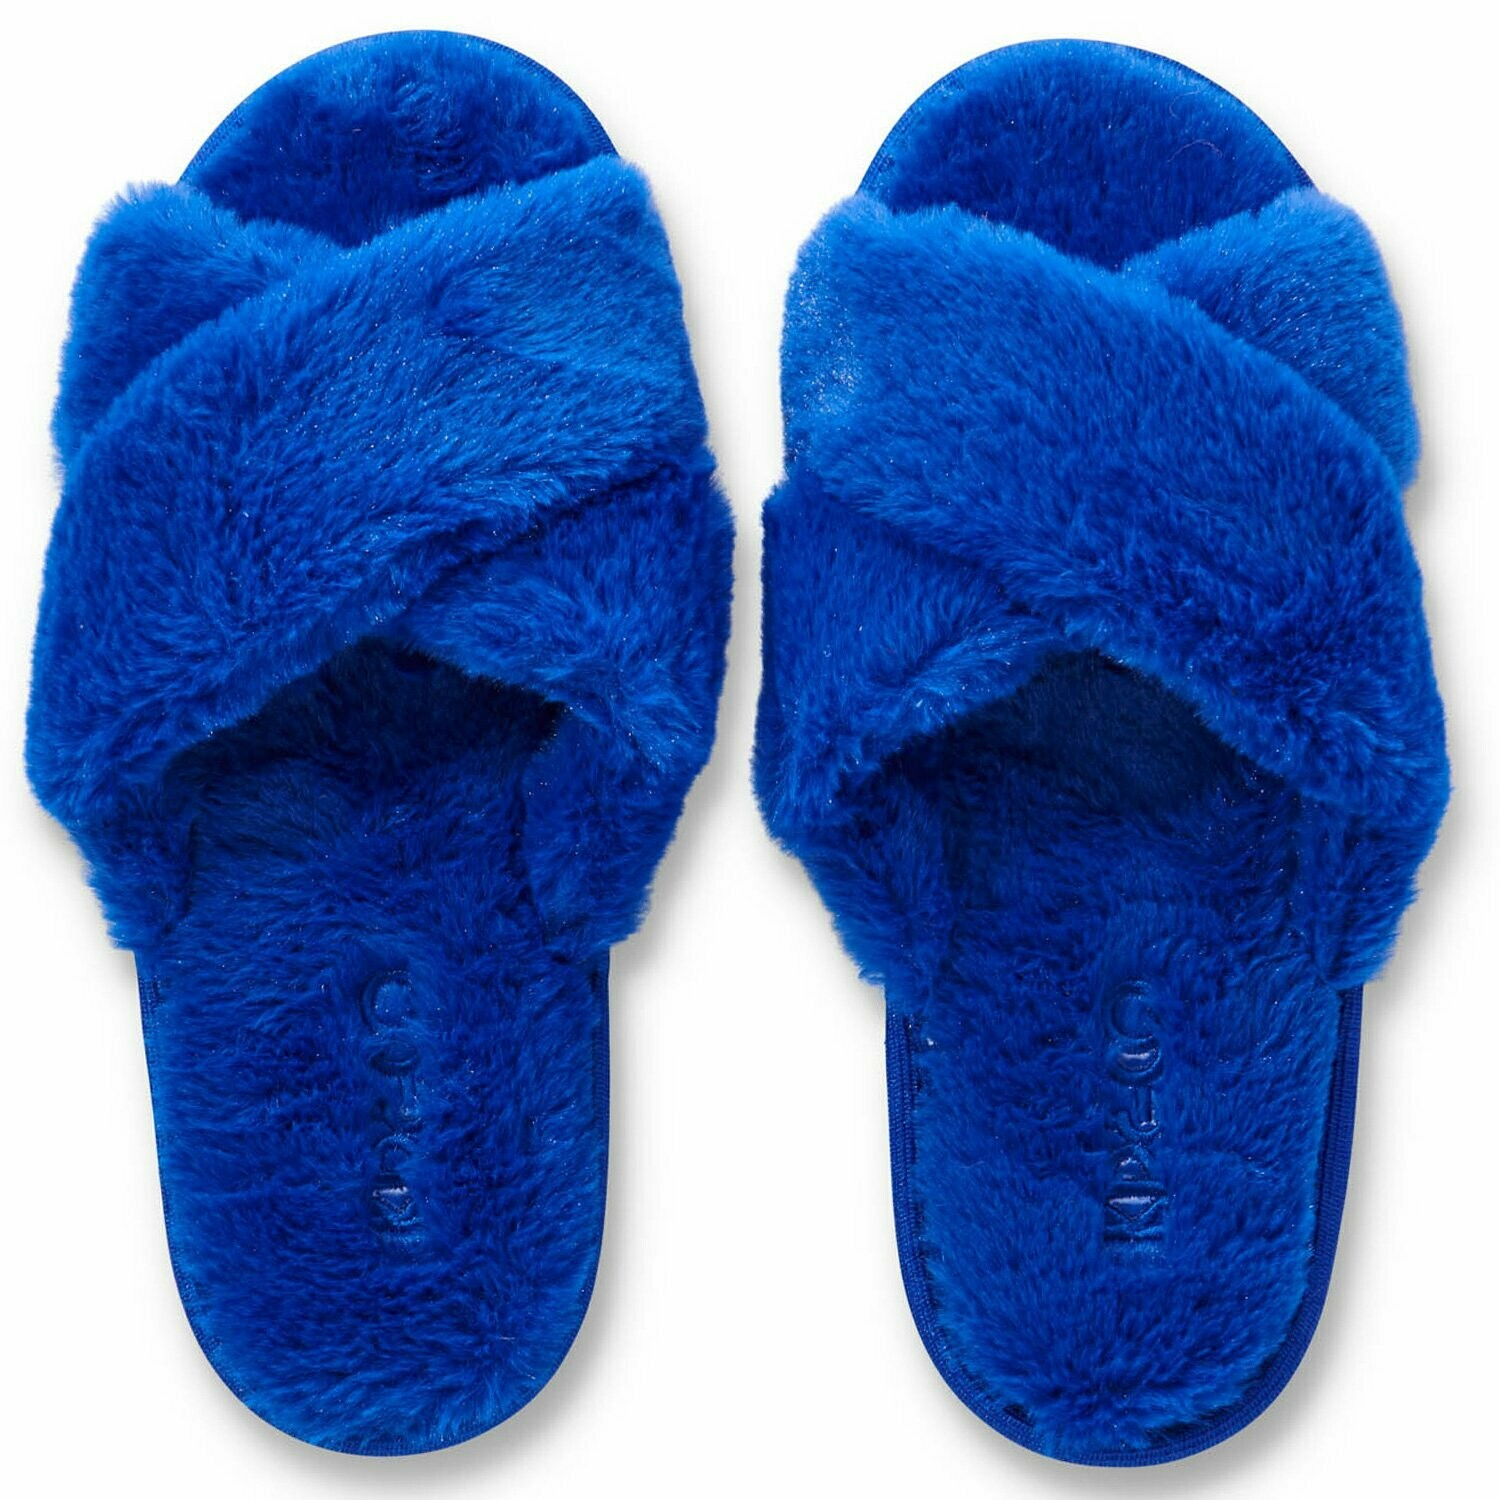 Adult Plush Slippers - Dazzling Blue